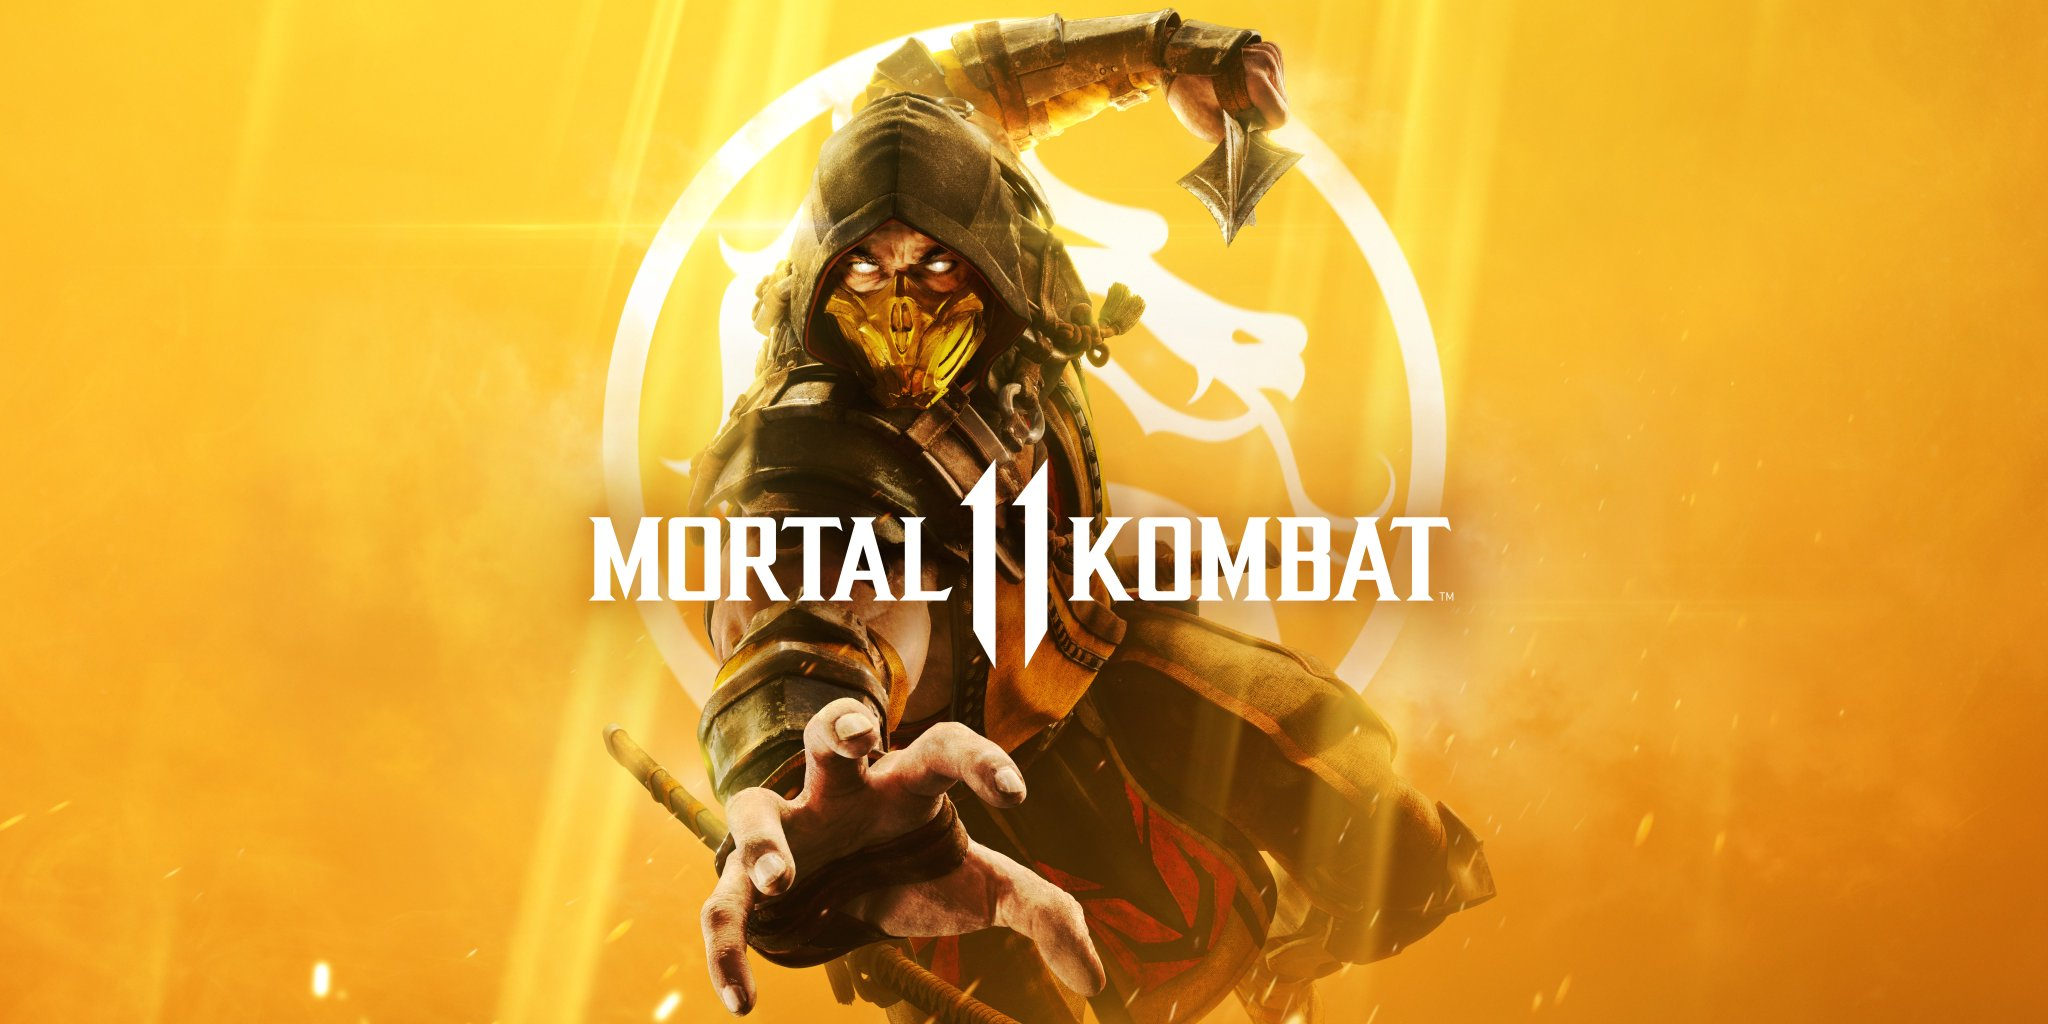 Scorpion is the golden child who's on the cover of Mortal Kombat 11 screenshot